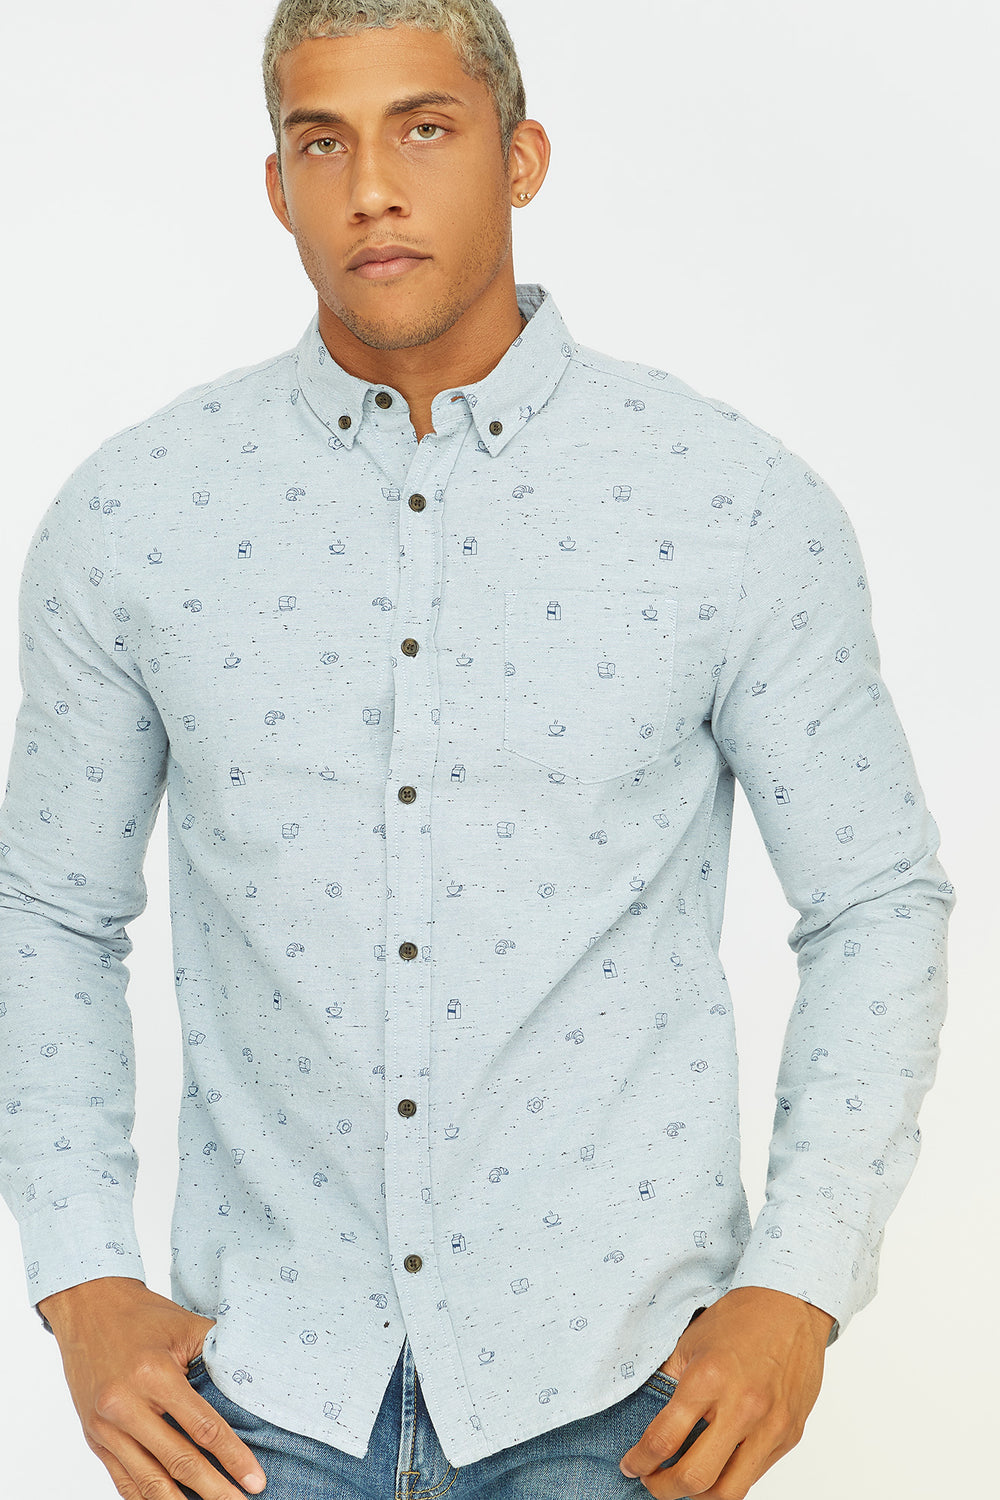 Printed Button-Up Front Pocket Long Sleeve Shirt Blue